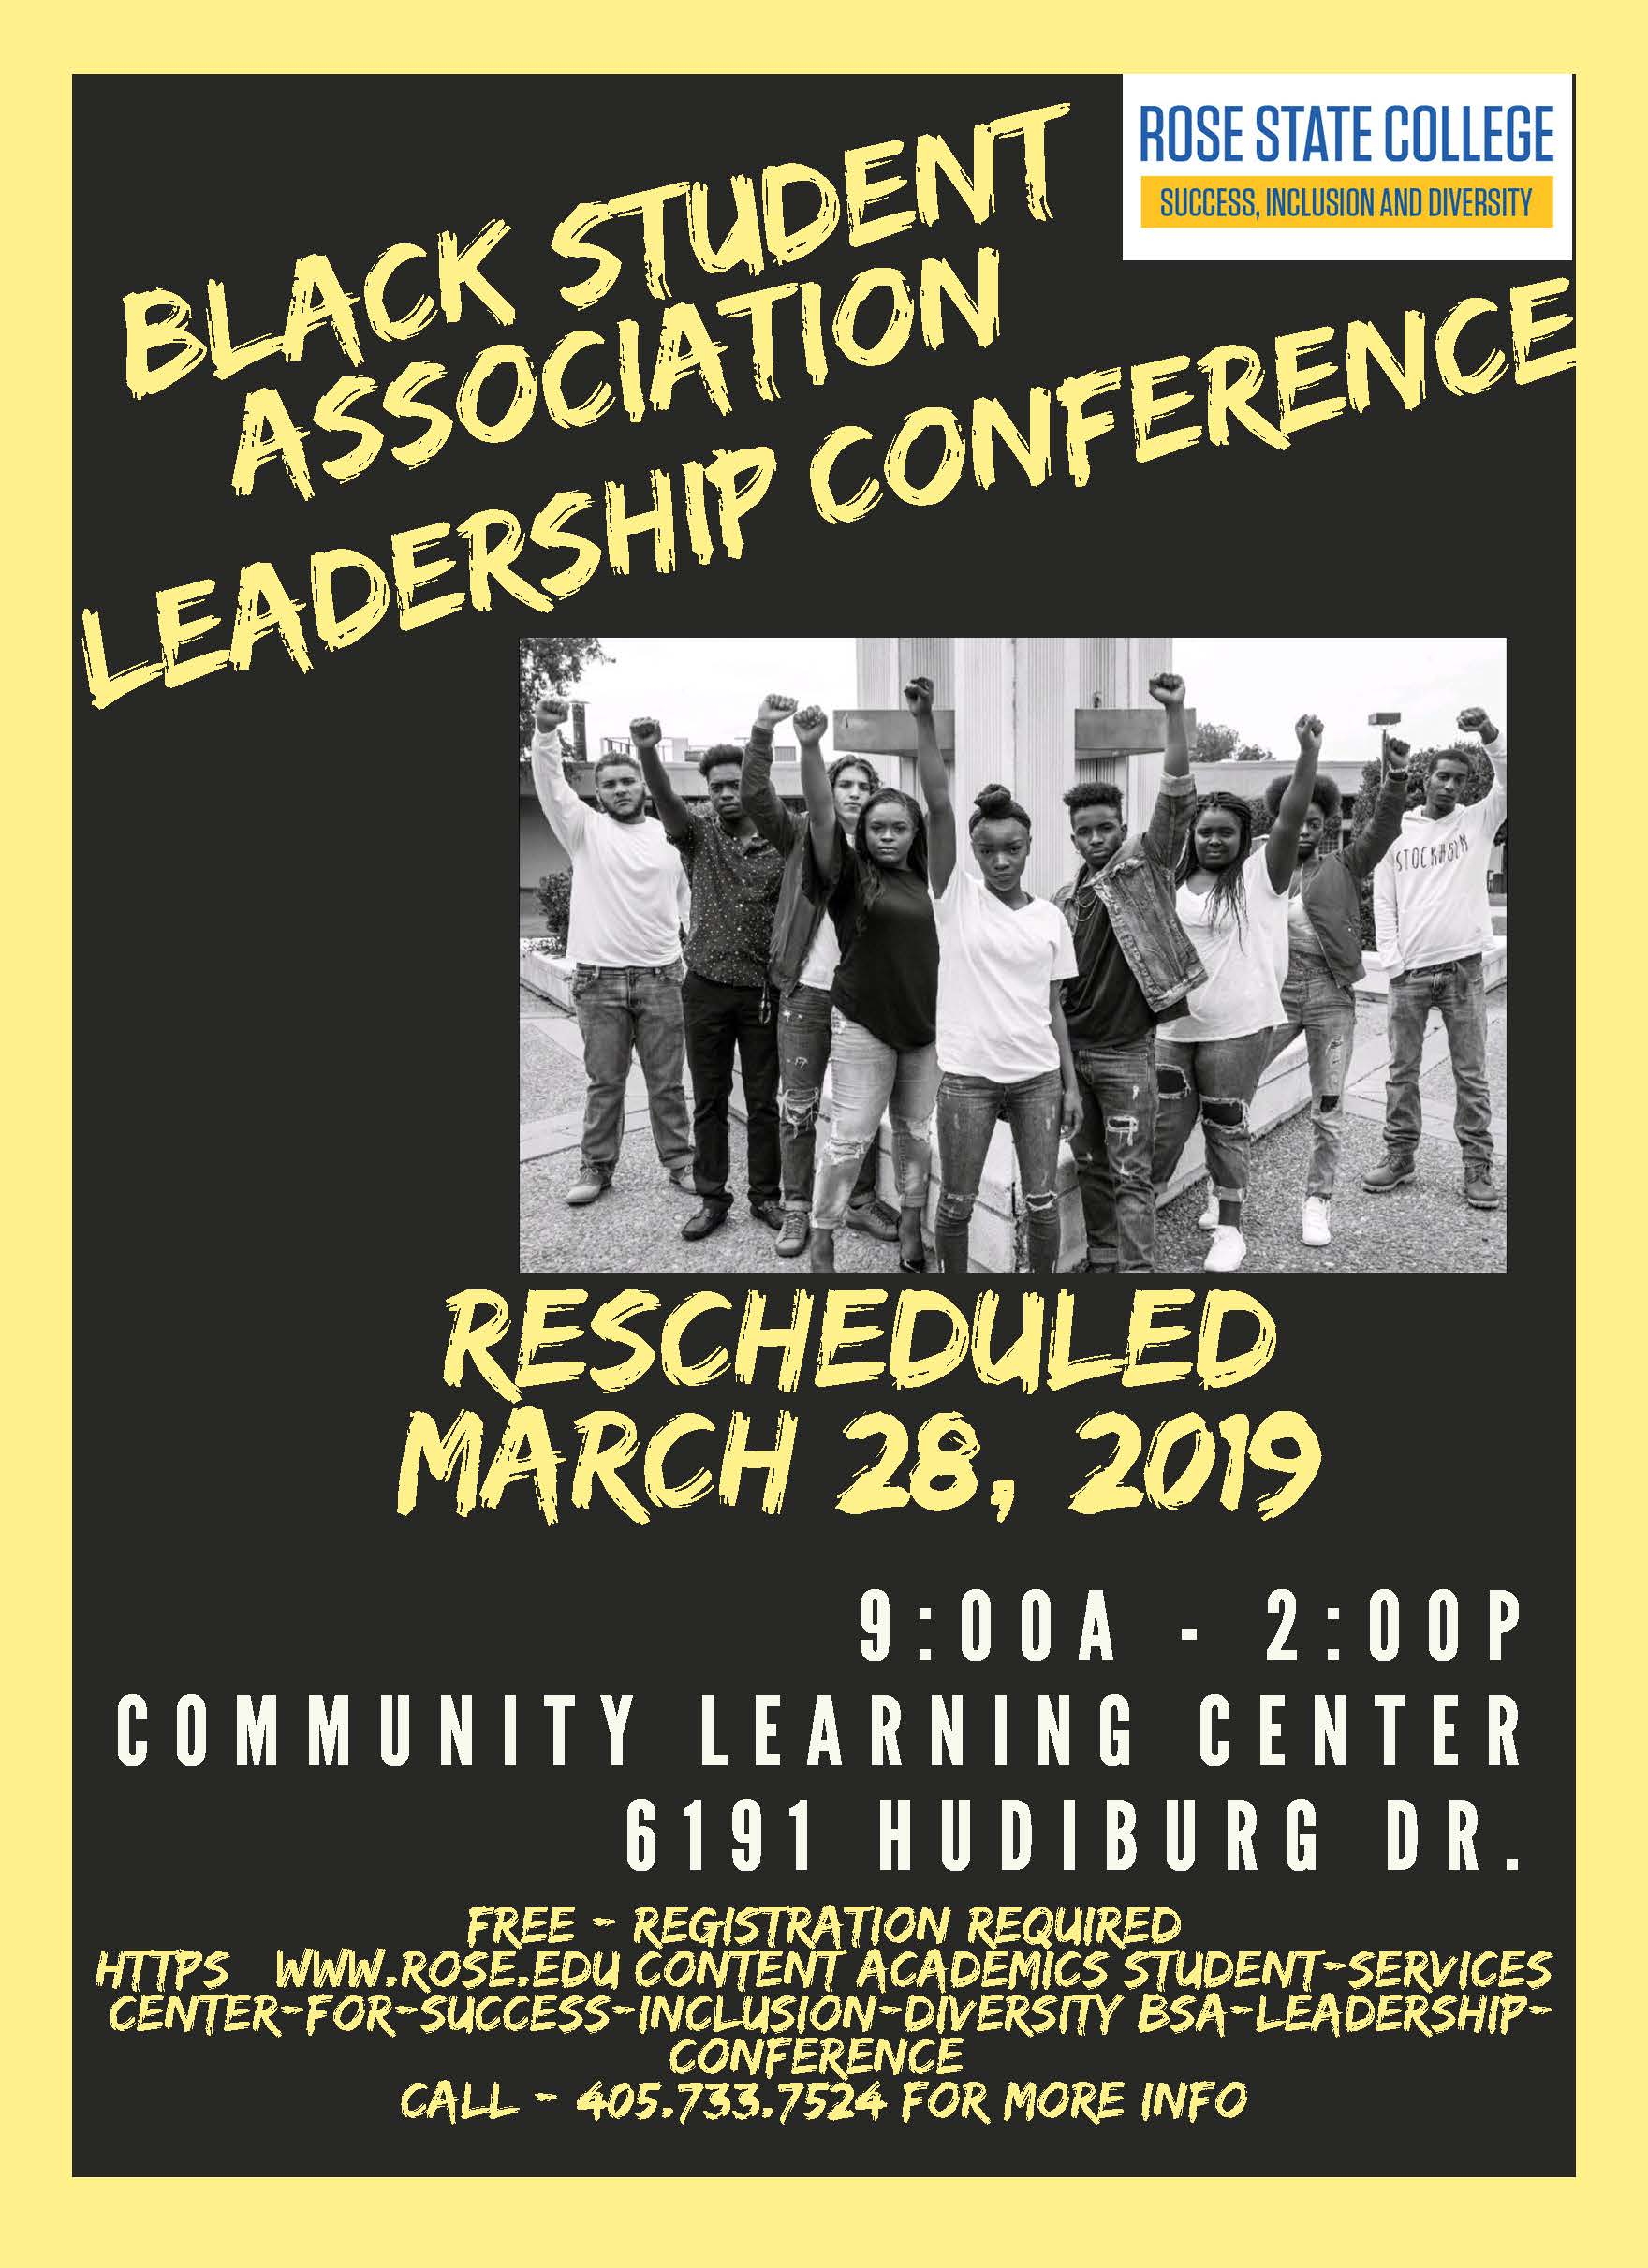 BSA Leadership Conference